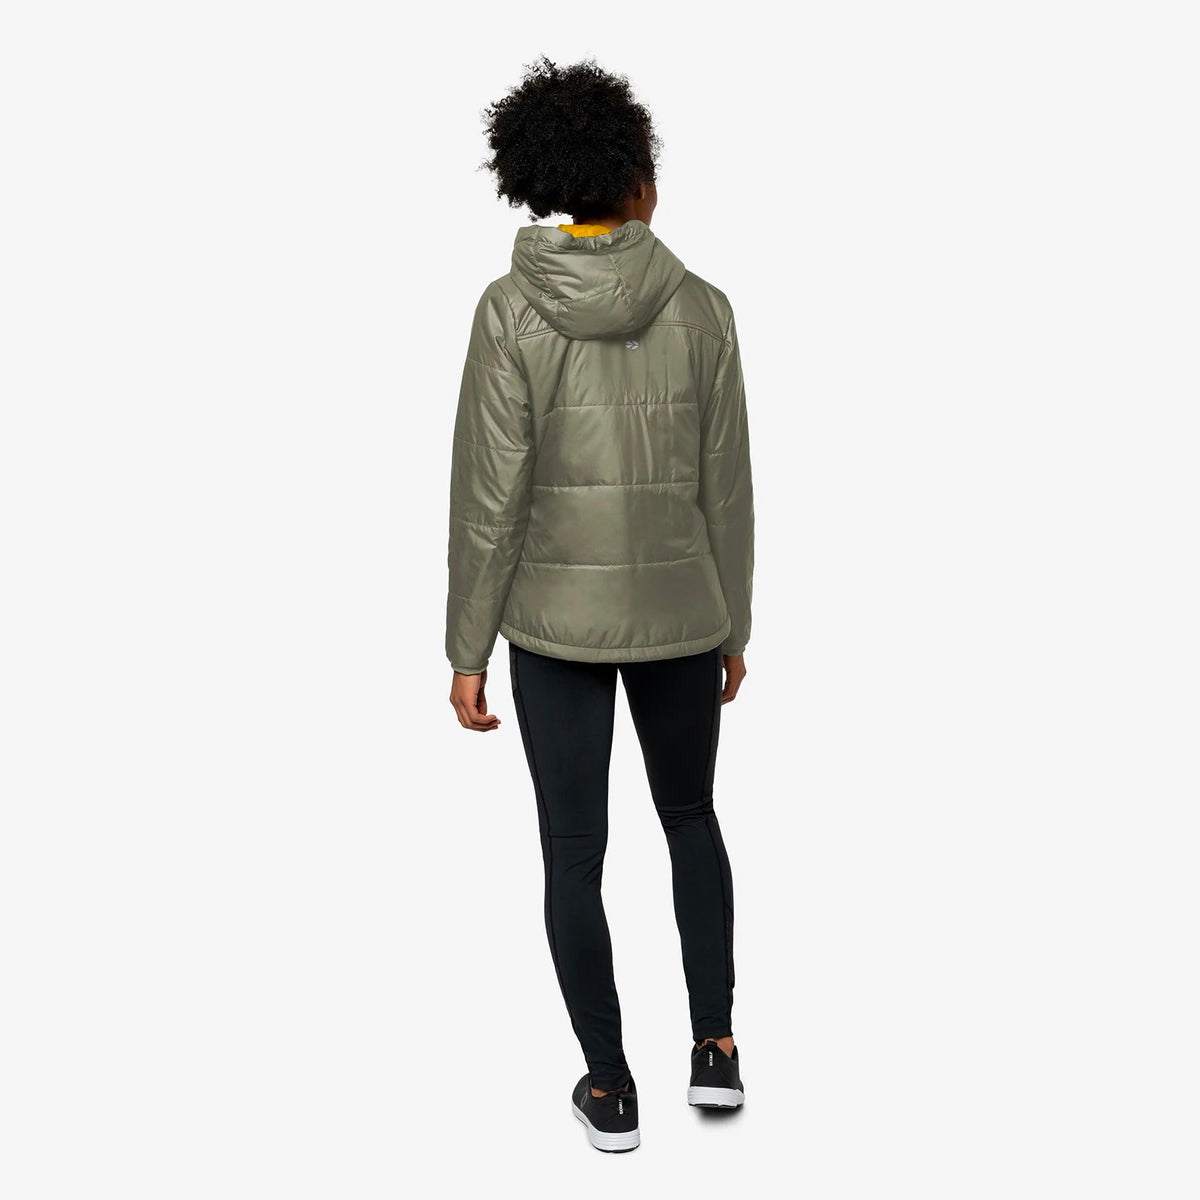 ReFill Eco100 Jacket